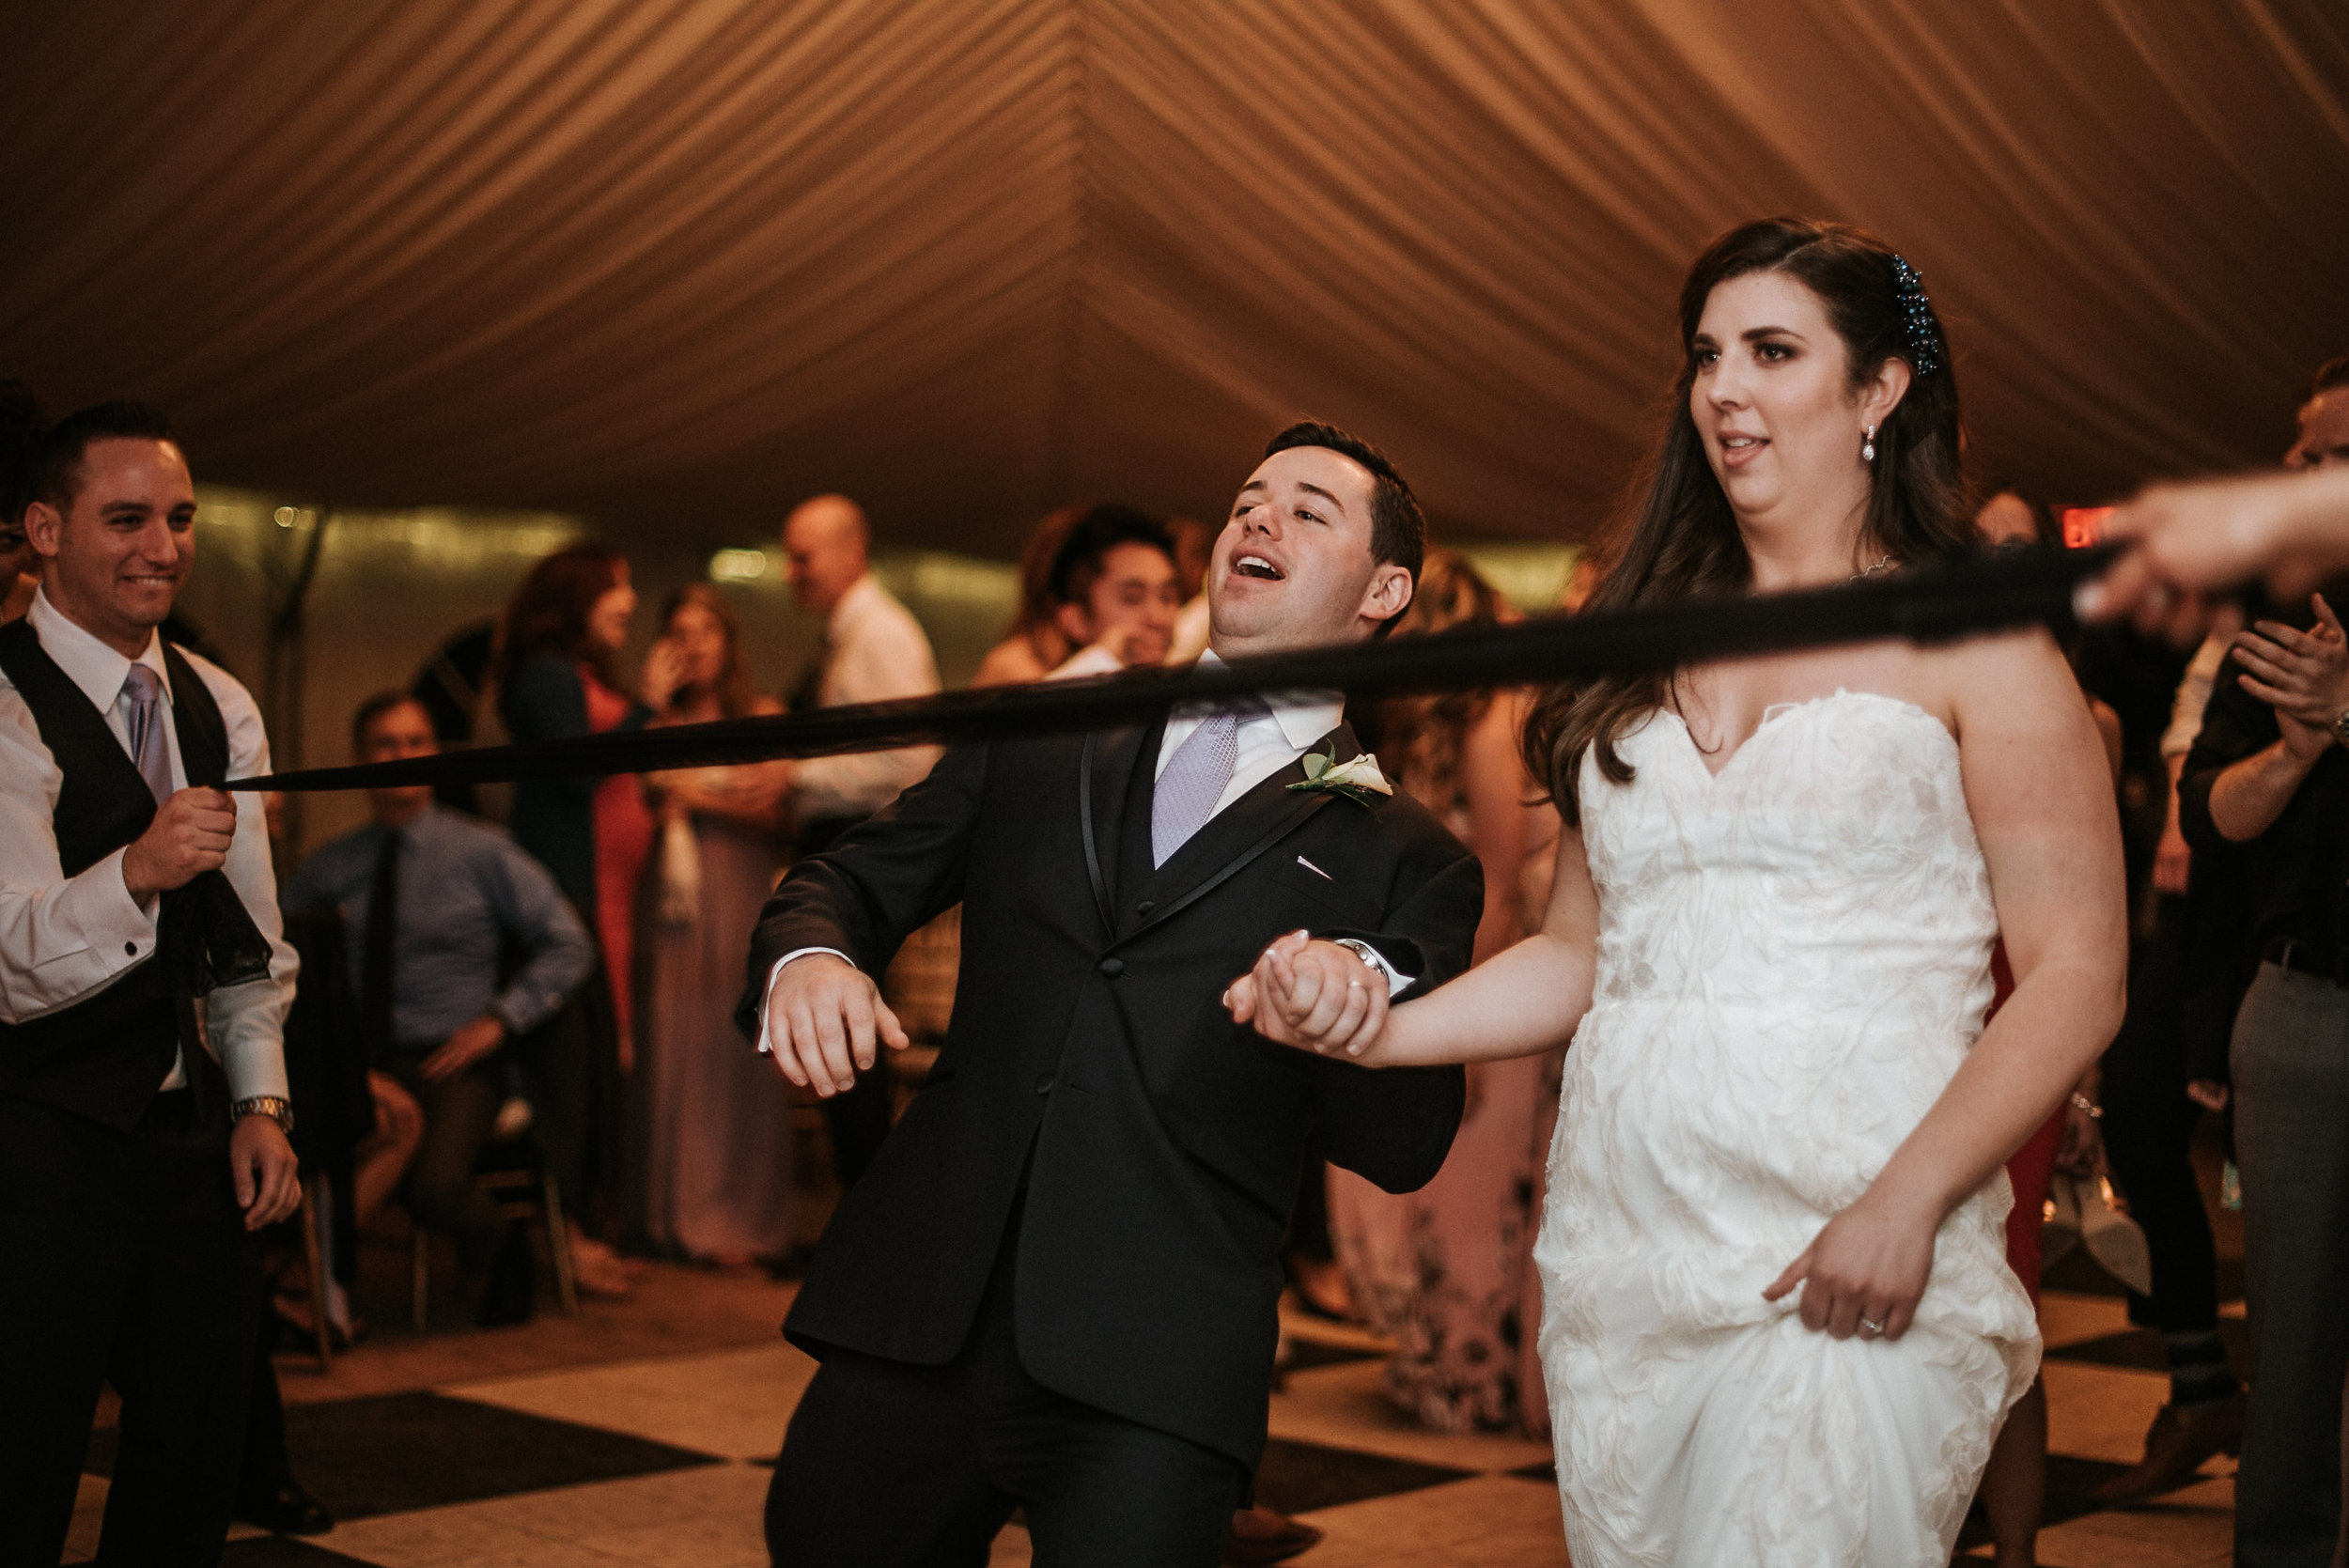 Bride and groom doing the limbo